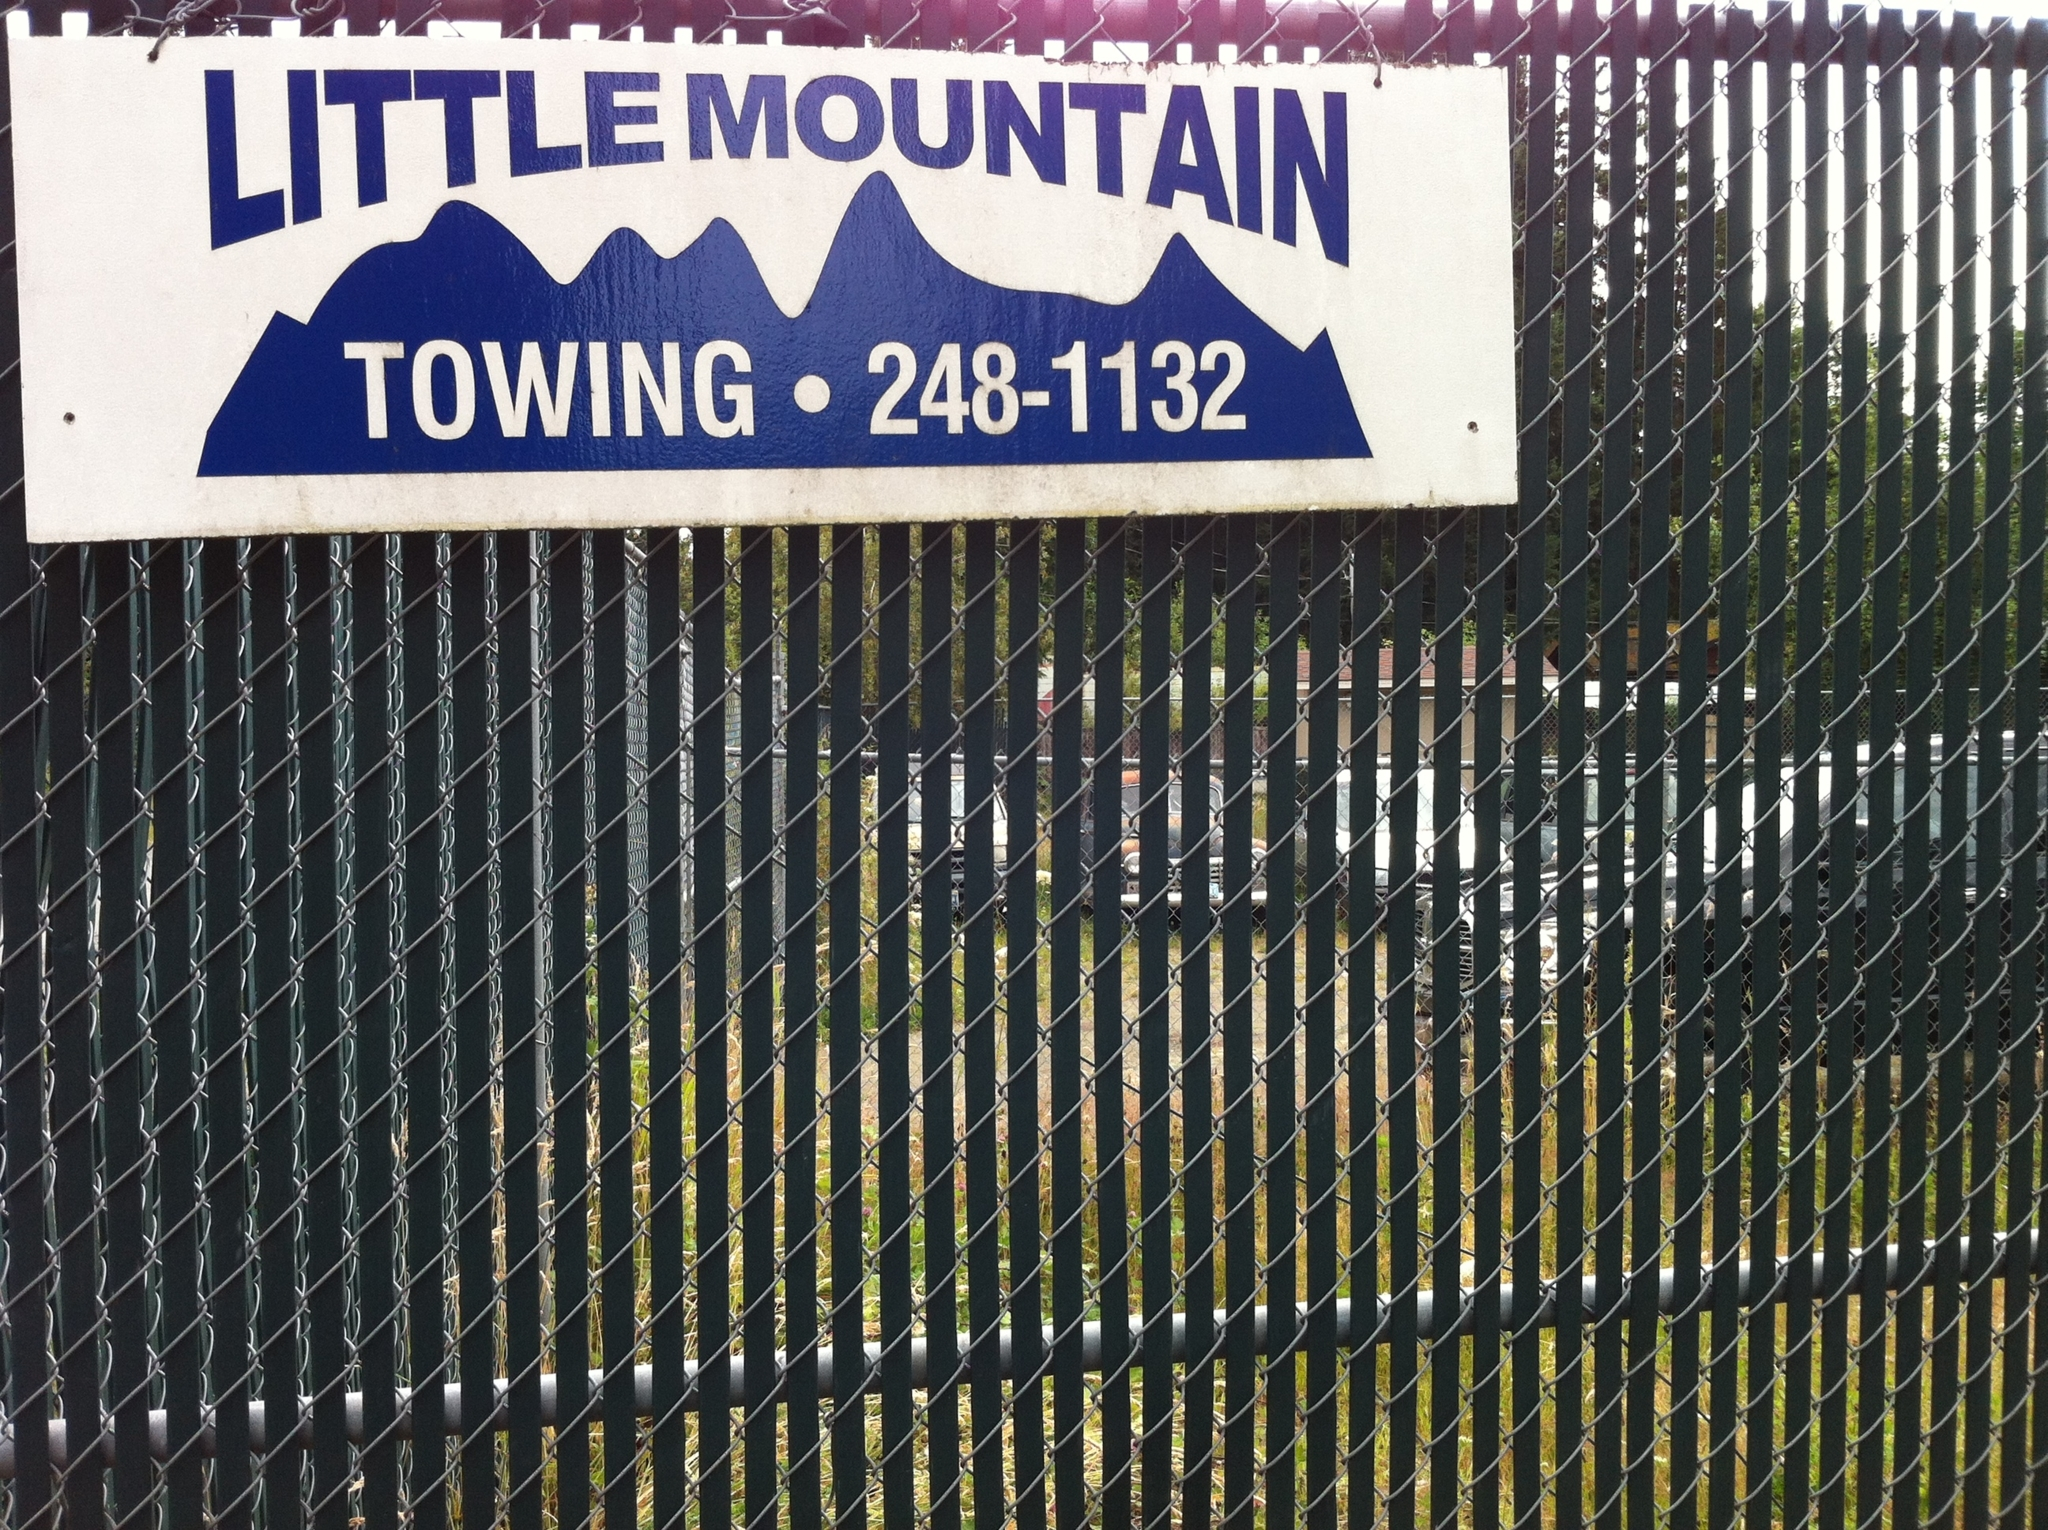 Little Mountain Towing